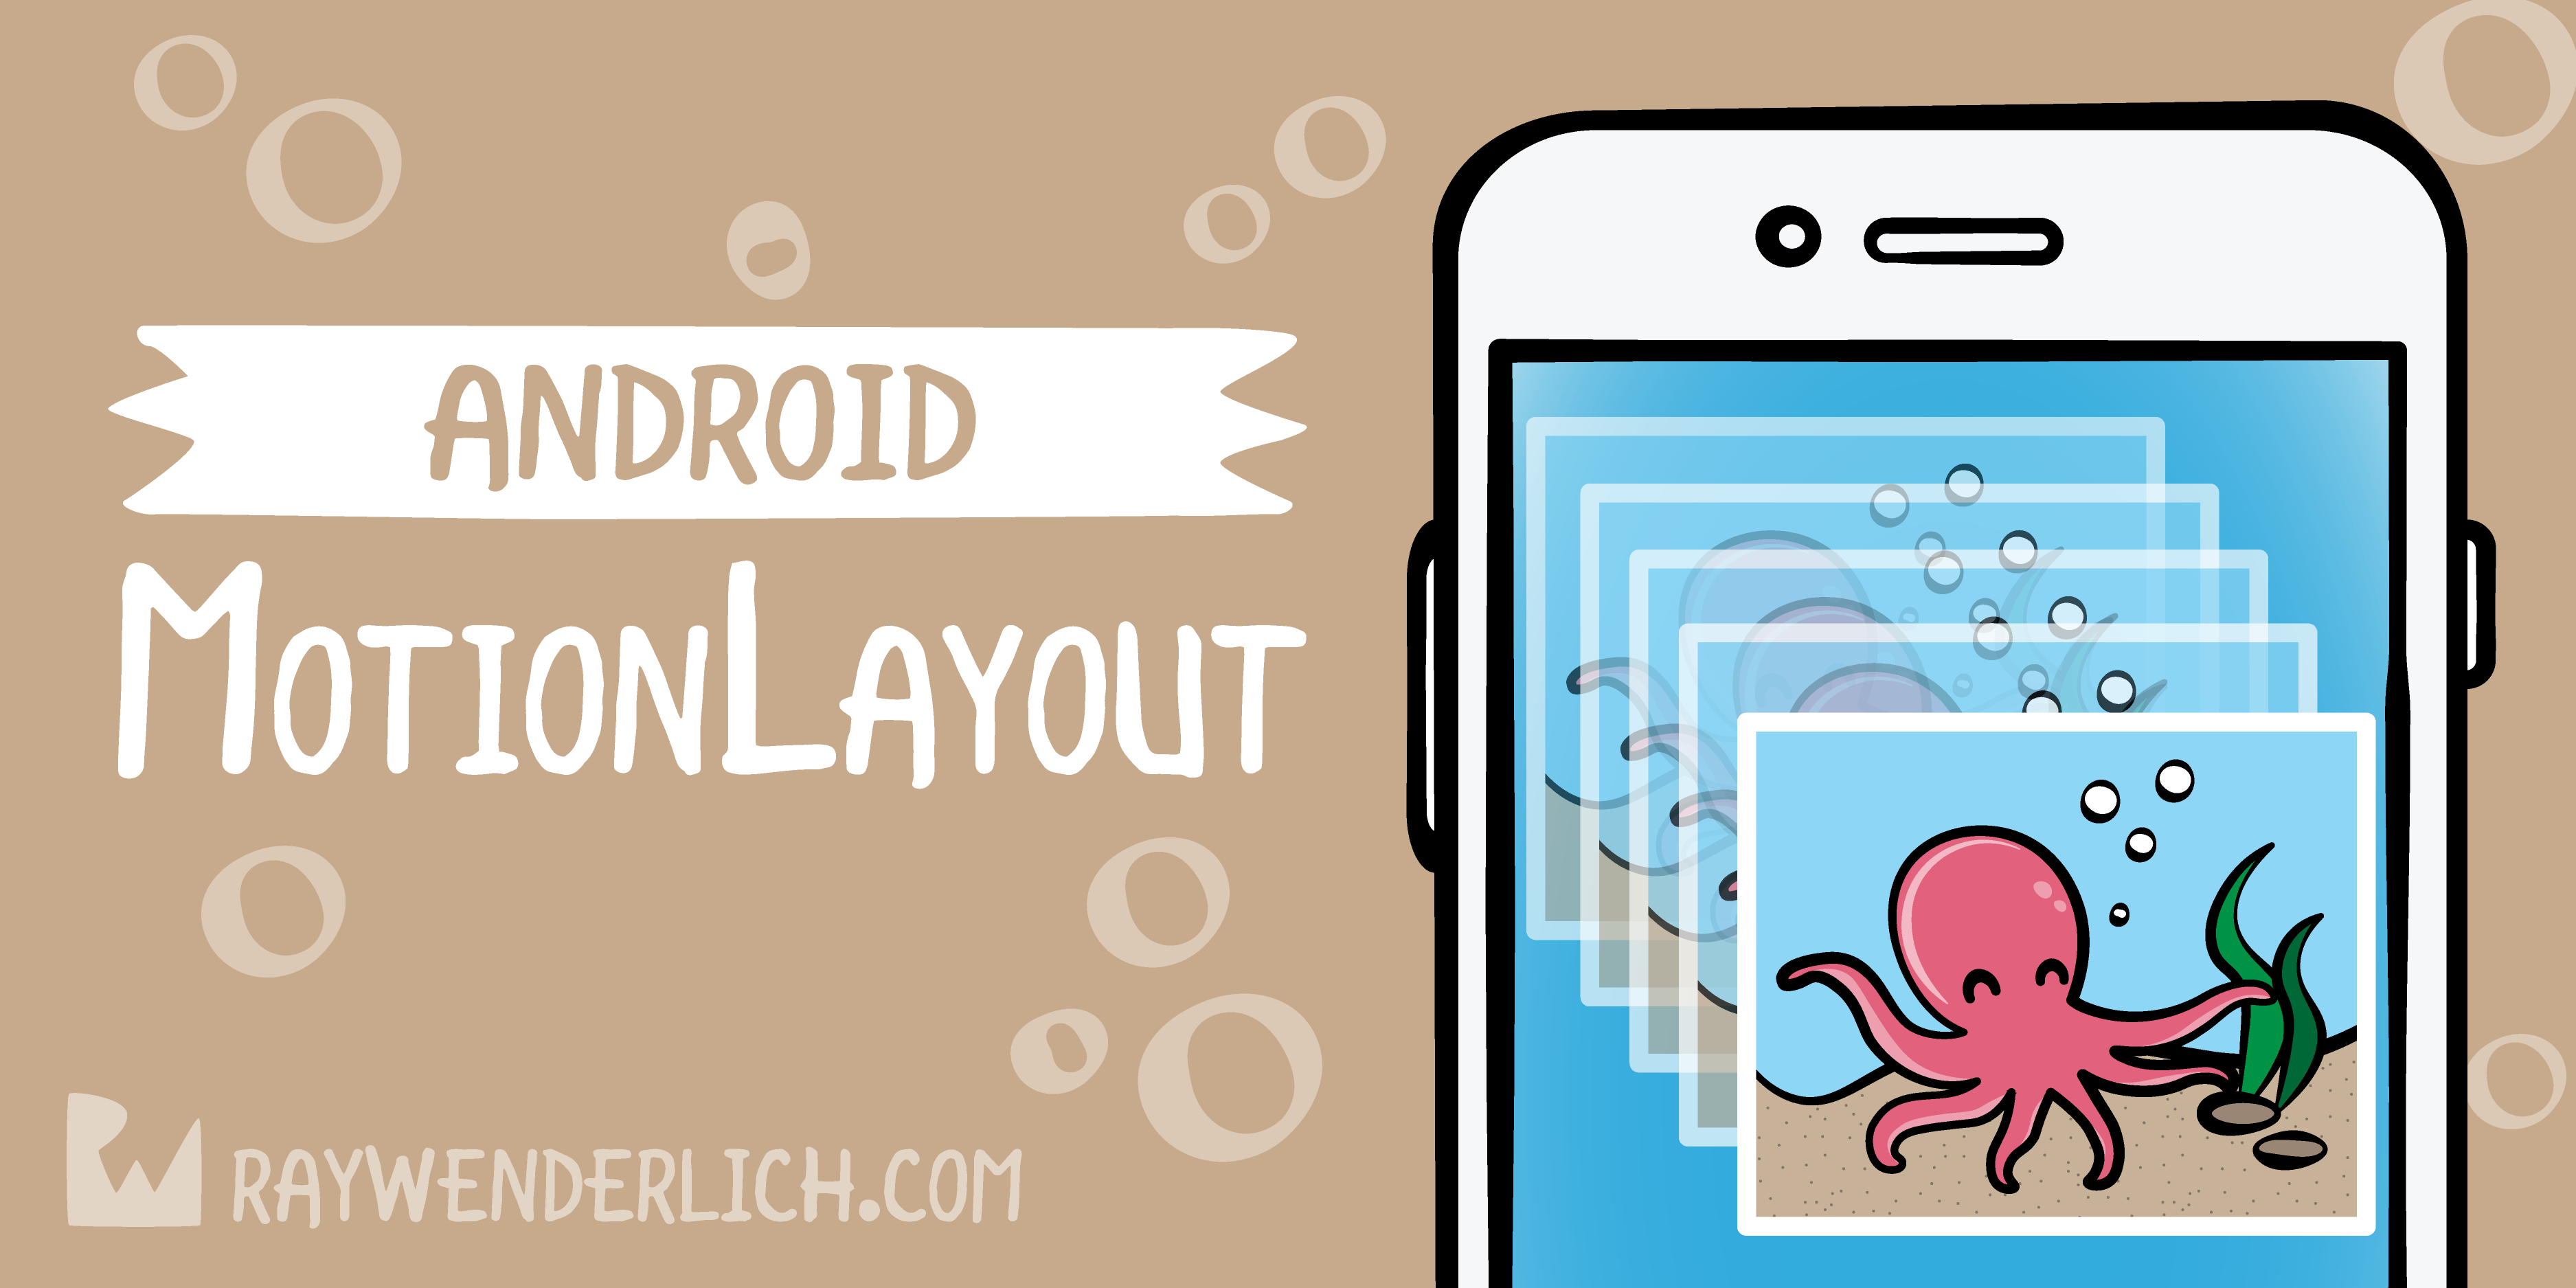 MotionLayout Tutorial For Android: Getting Started | raywenderlich com